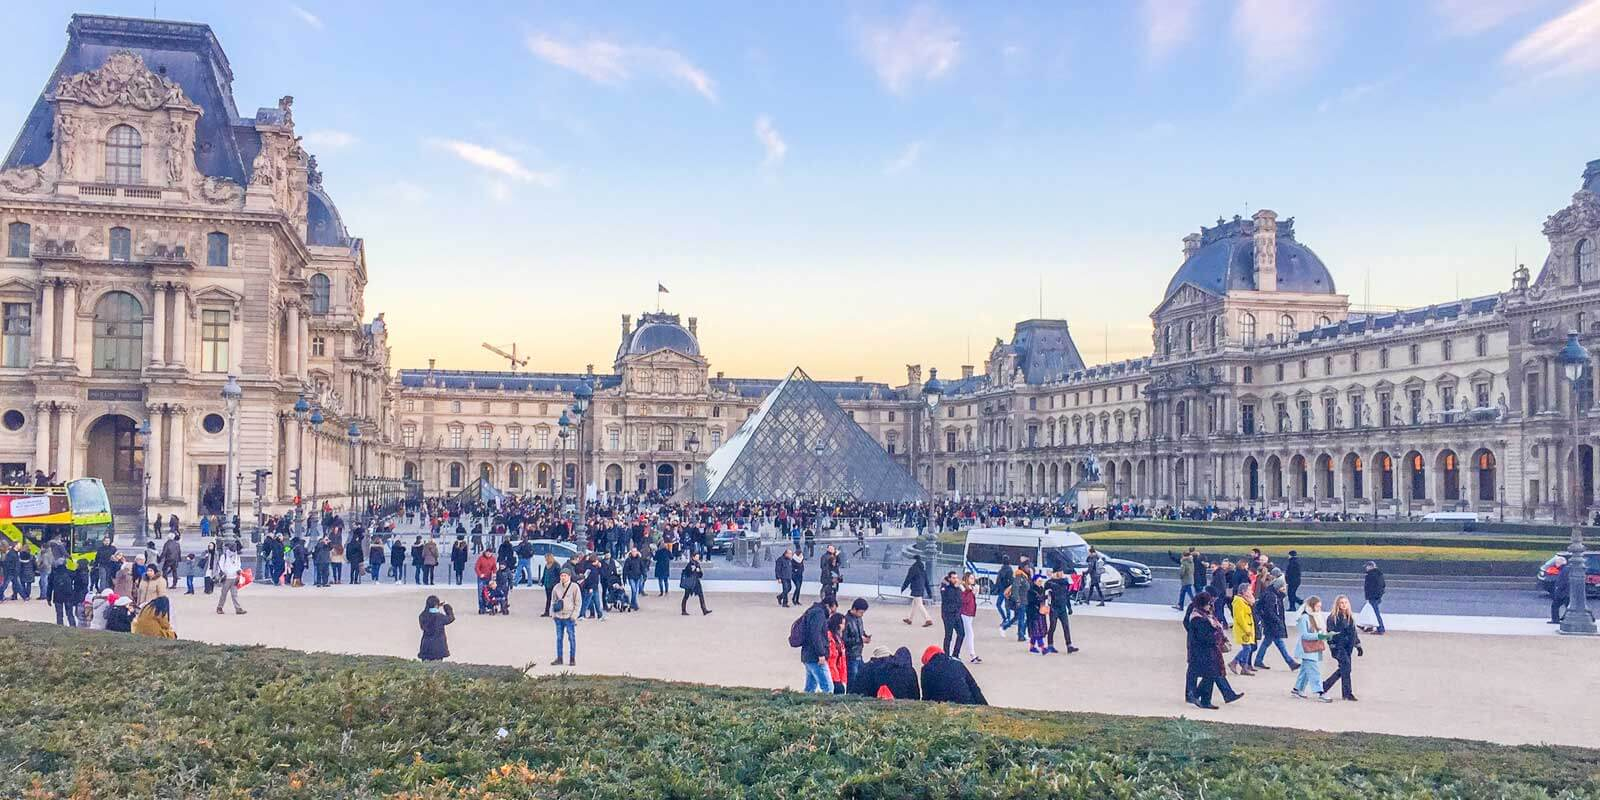 Crowds walking outside the front entrance to The Louvre at sunset.